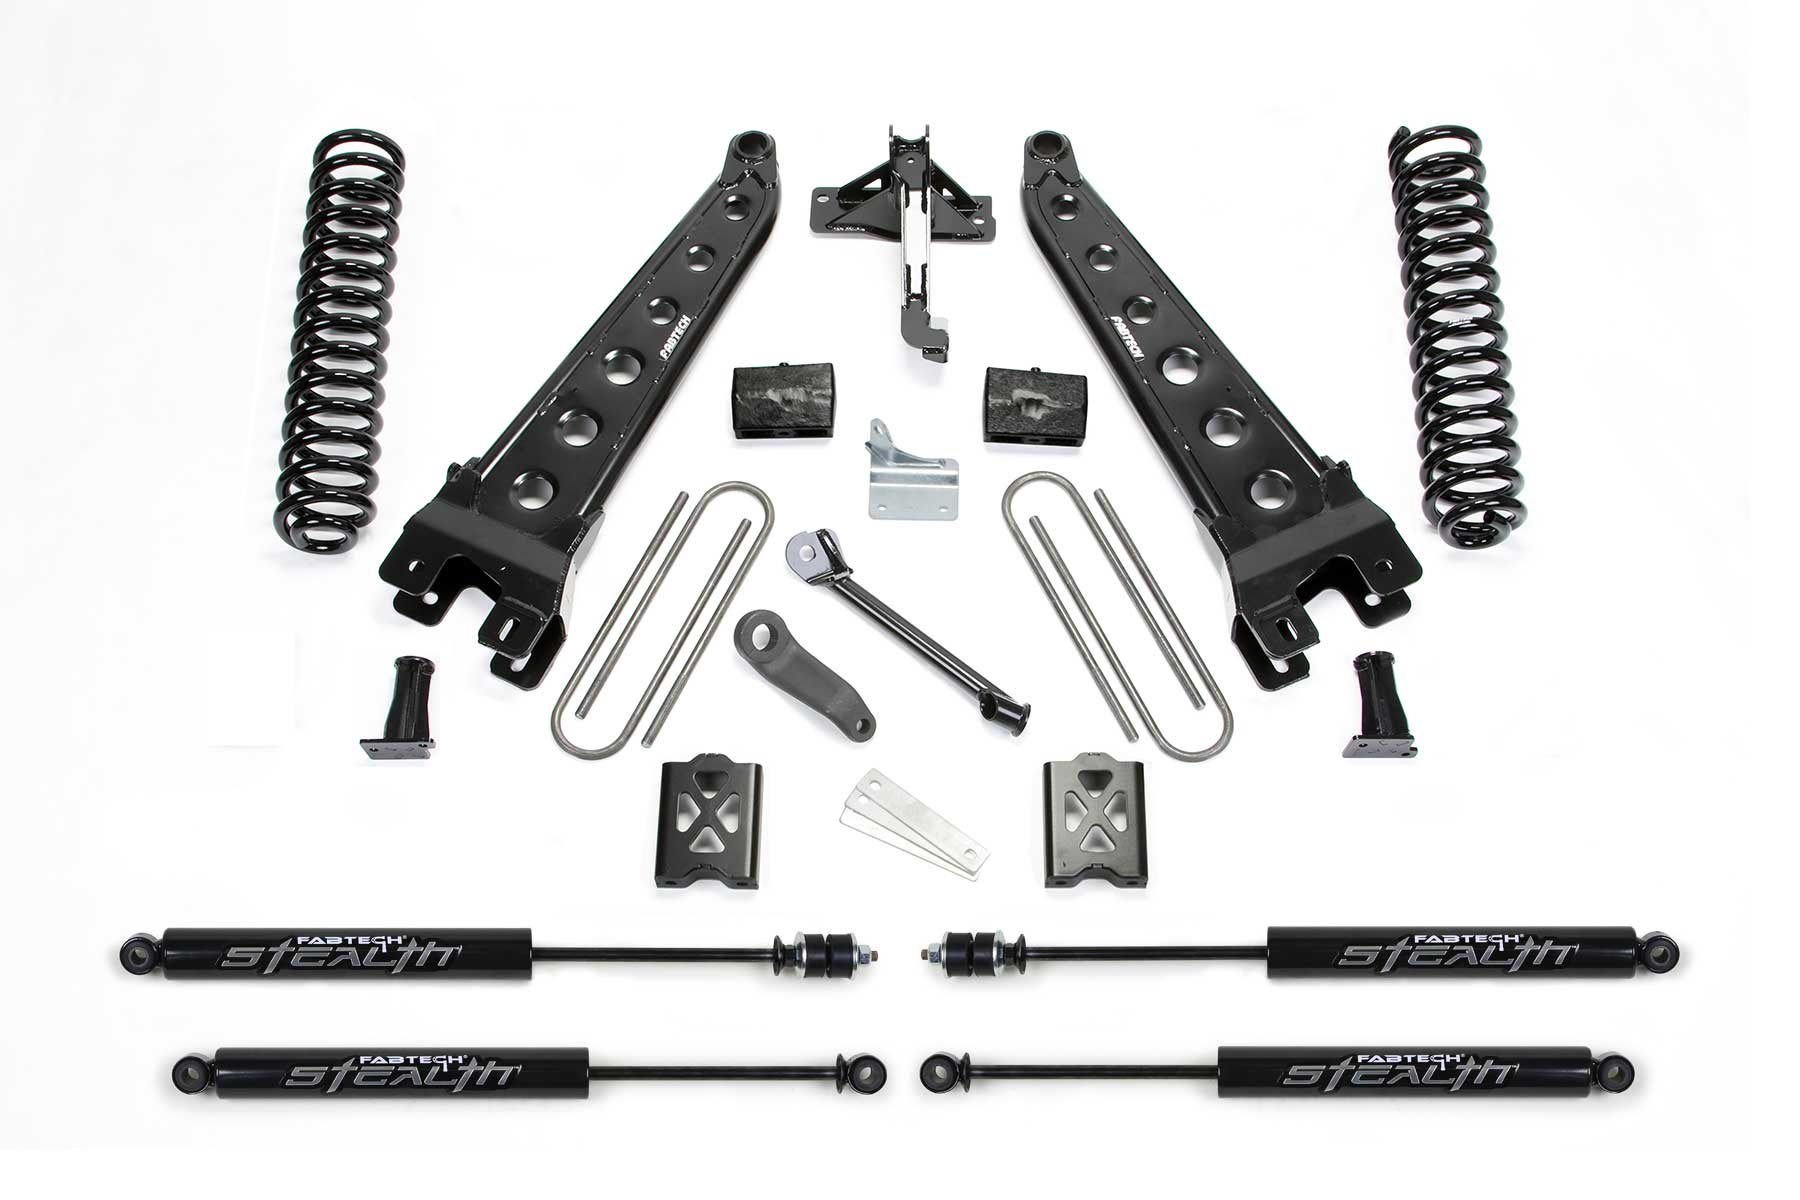 6 Radius Arm System W Stealth Shocks